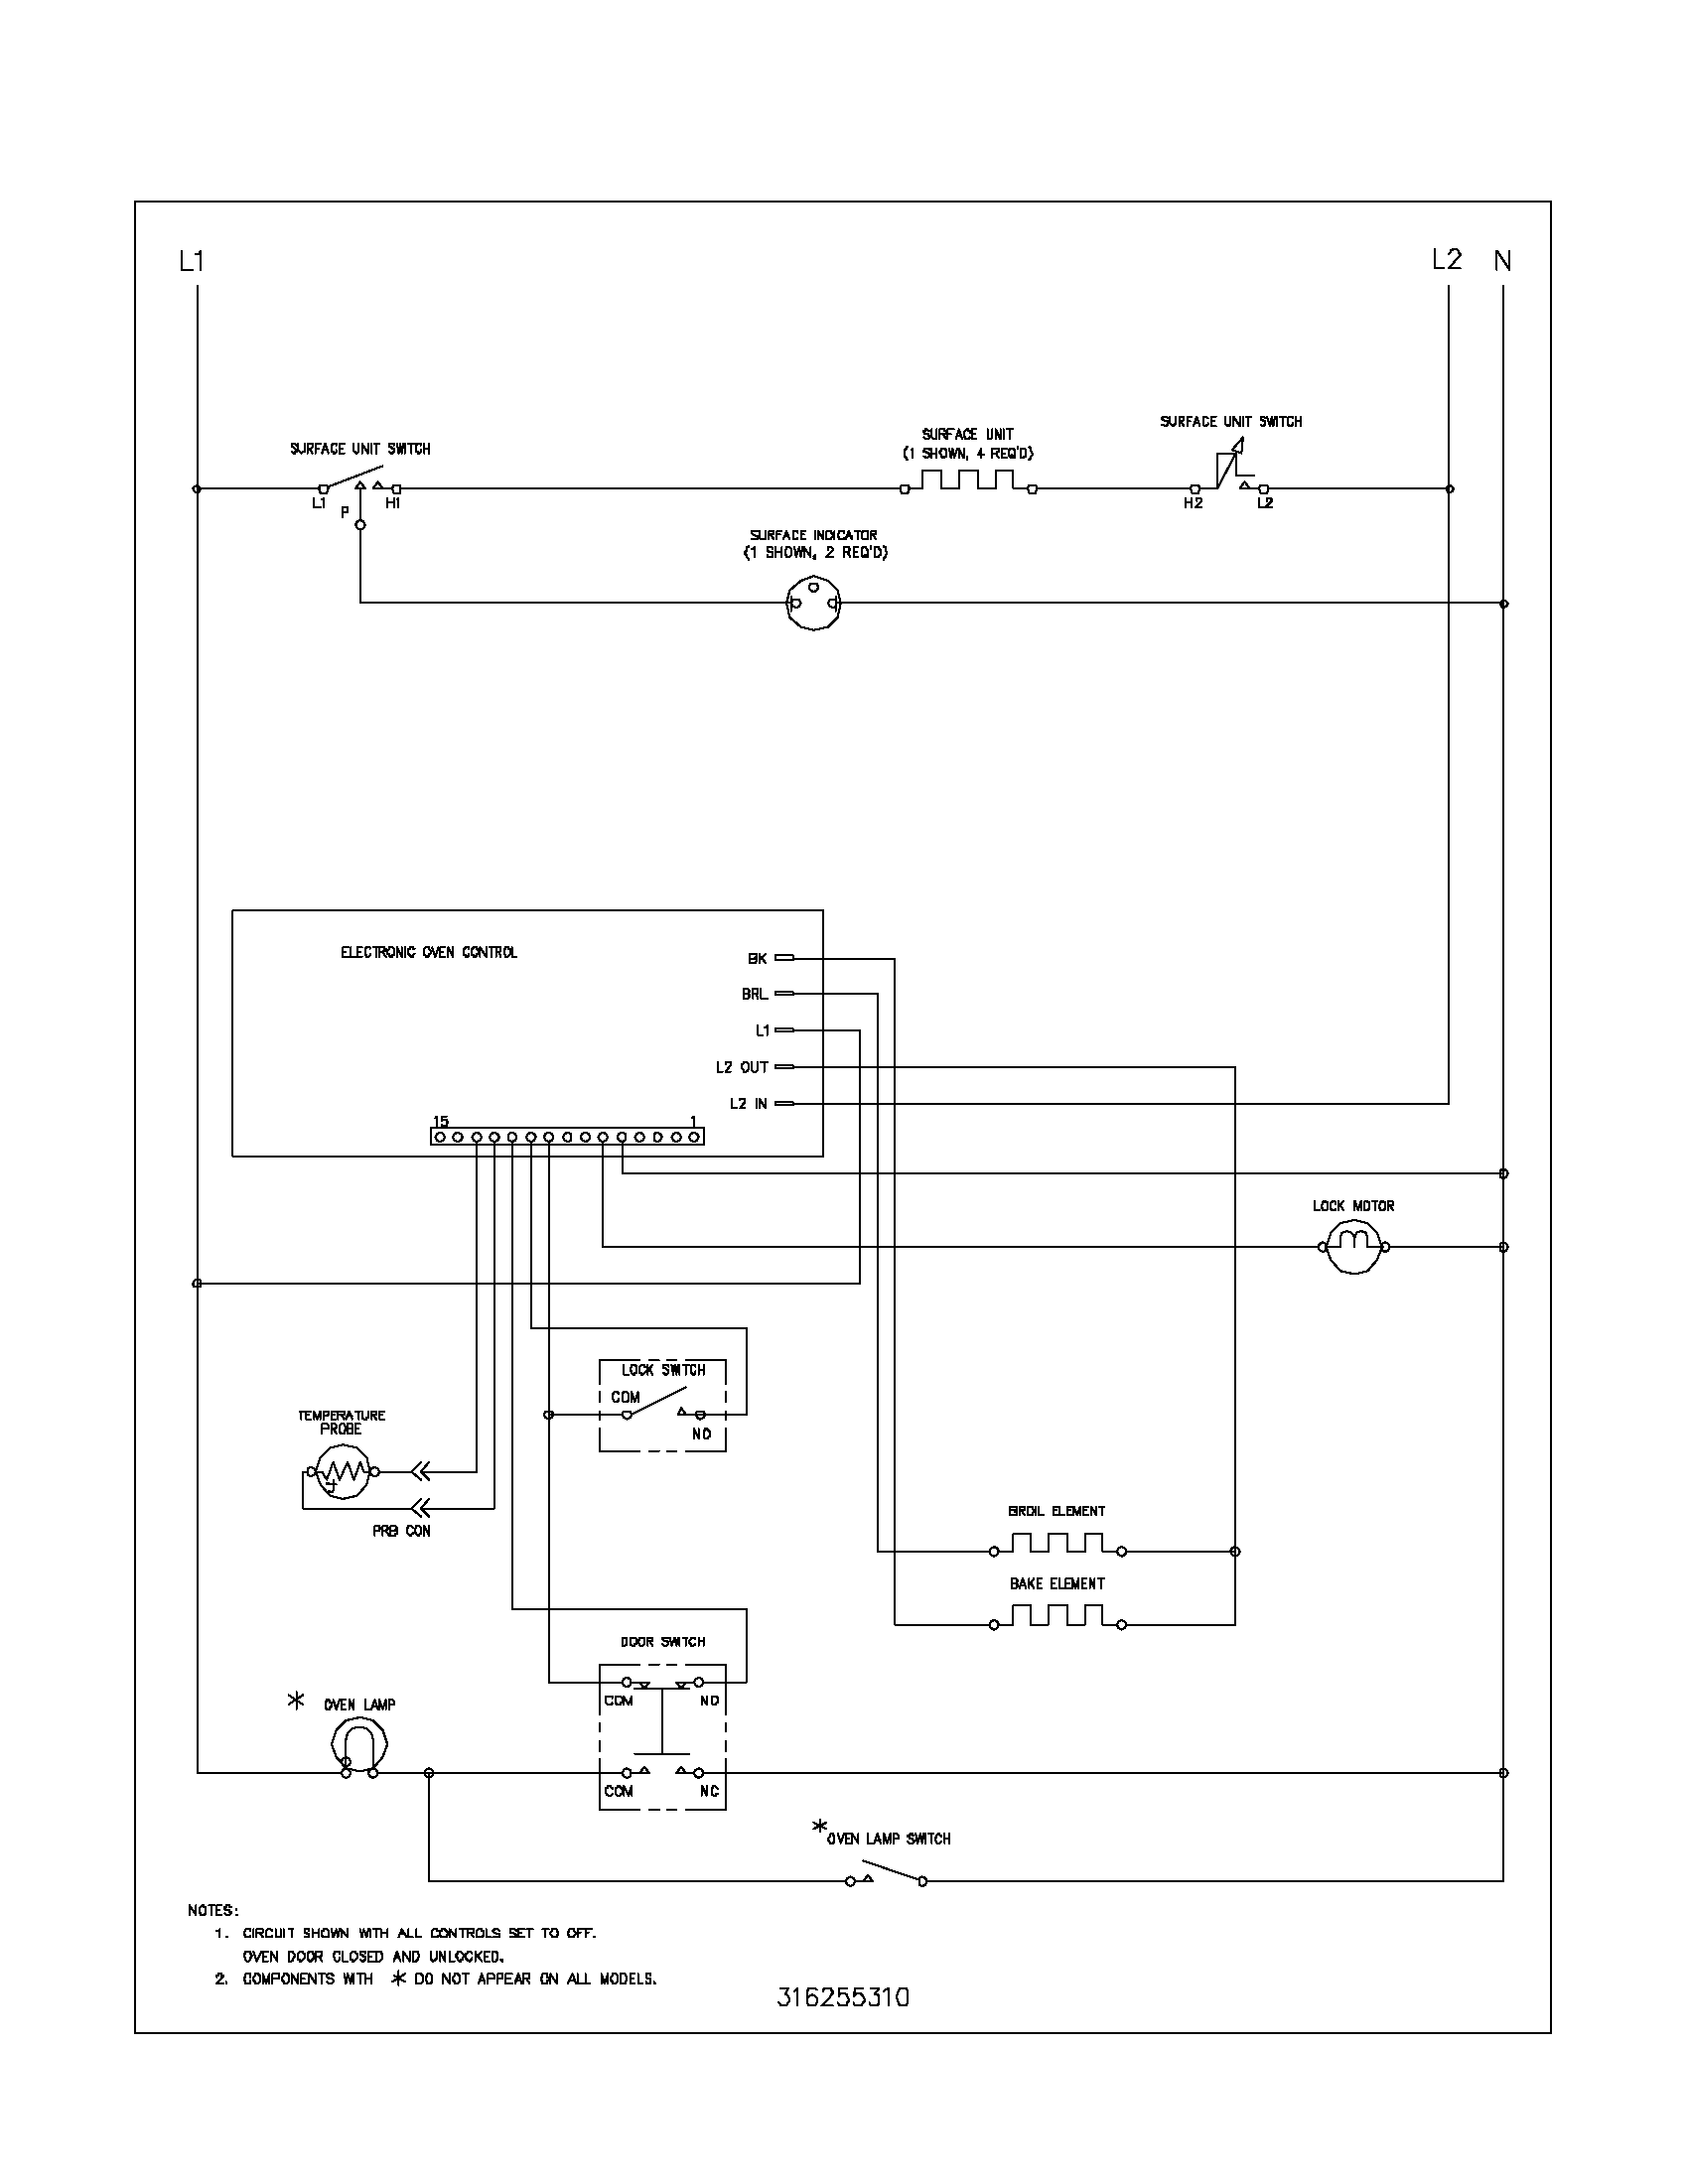 Kelvinator Washing Machine Wiring Diagram Not Lossing Ge Motor Frigidaire Fef352asf Electric Range Timer Stove Clocks And Rh Appliancetimers Com Schematic Circuit